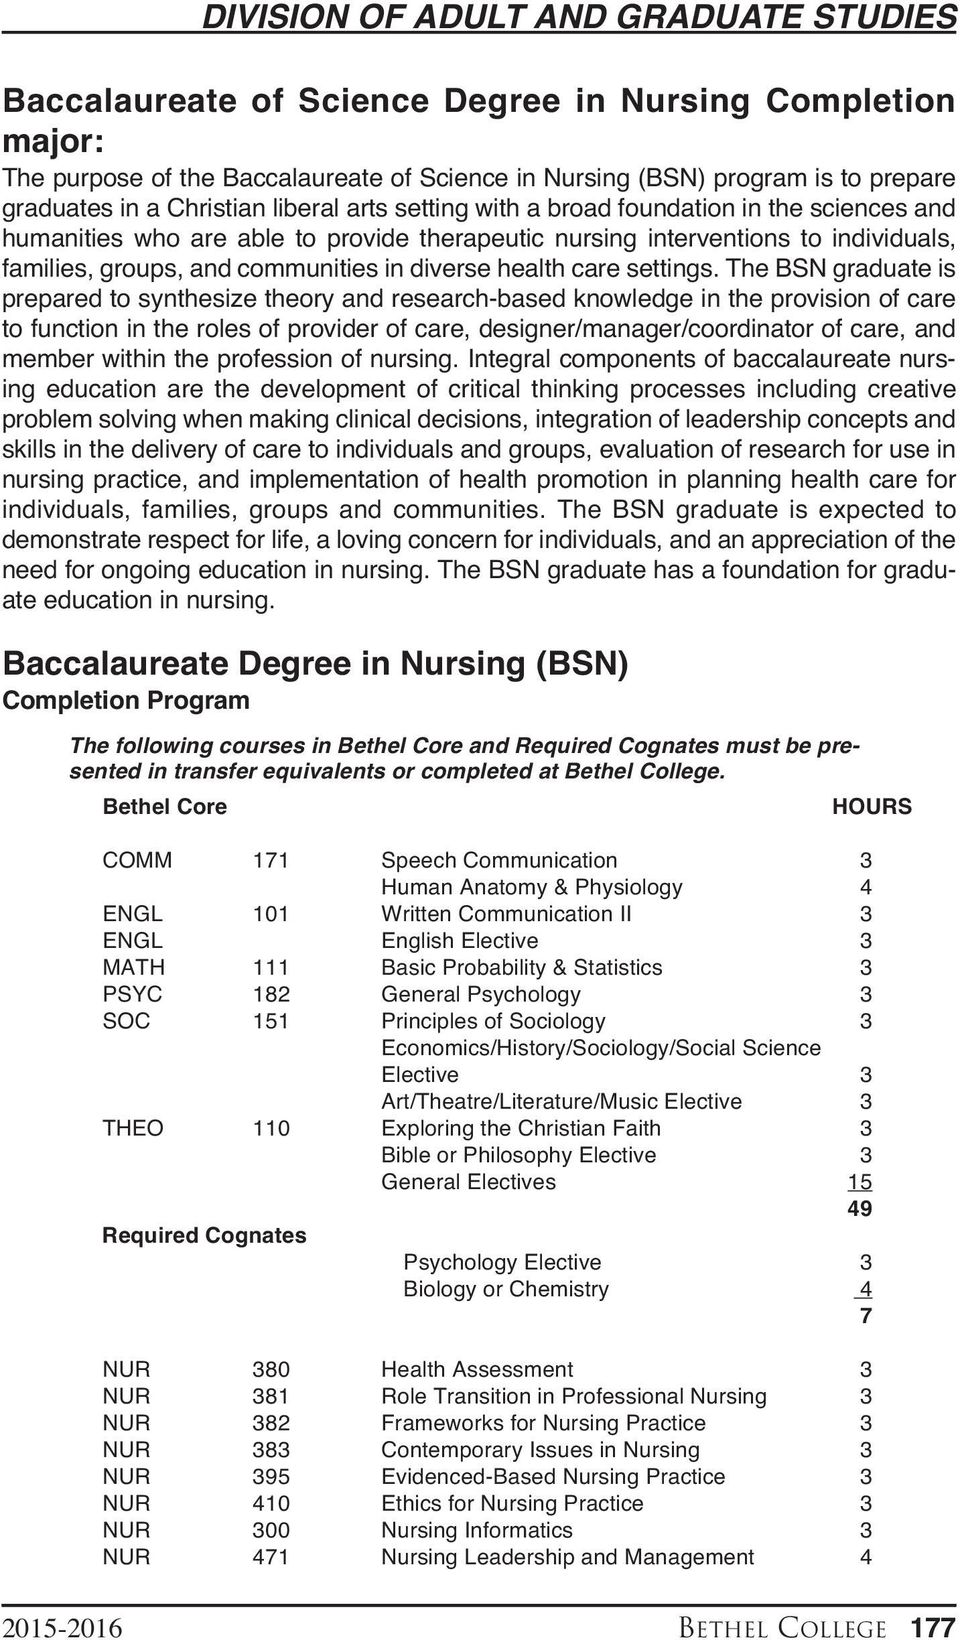 The BSN graduate is prepared to synthesize theory and research-based knowledge in the provision of care to function in the roles of provider of care, designer/manager/coordinator of care, and member